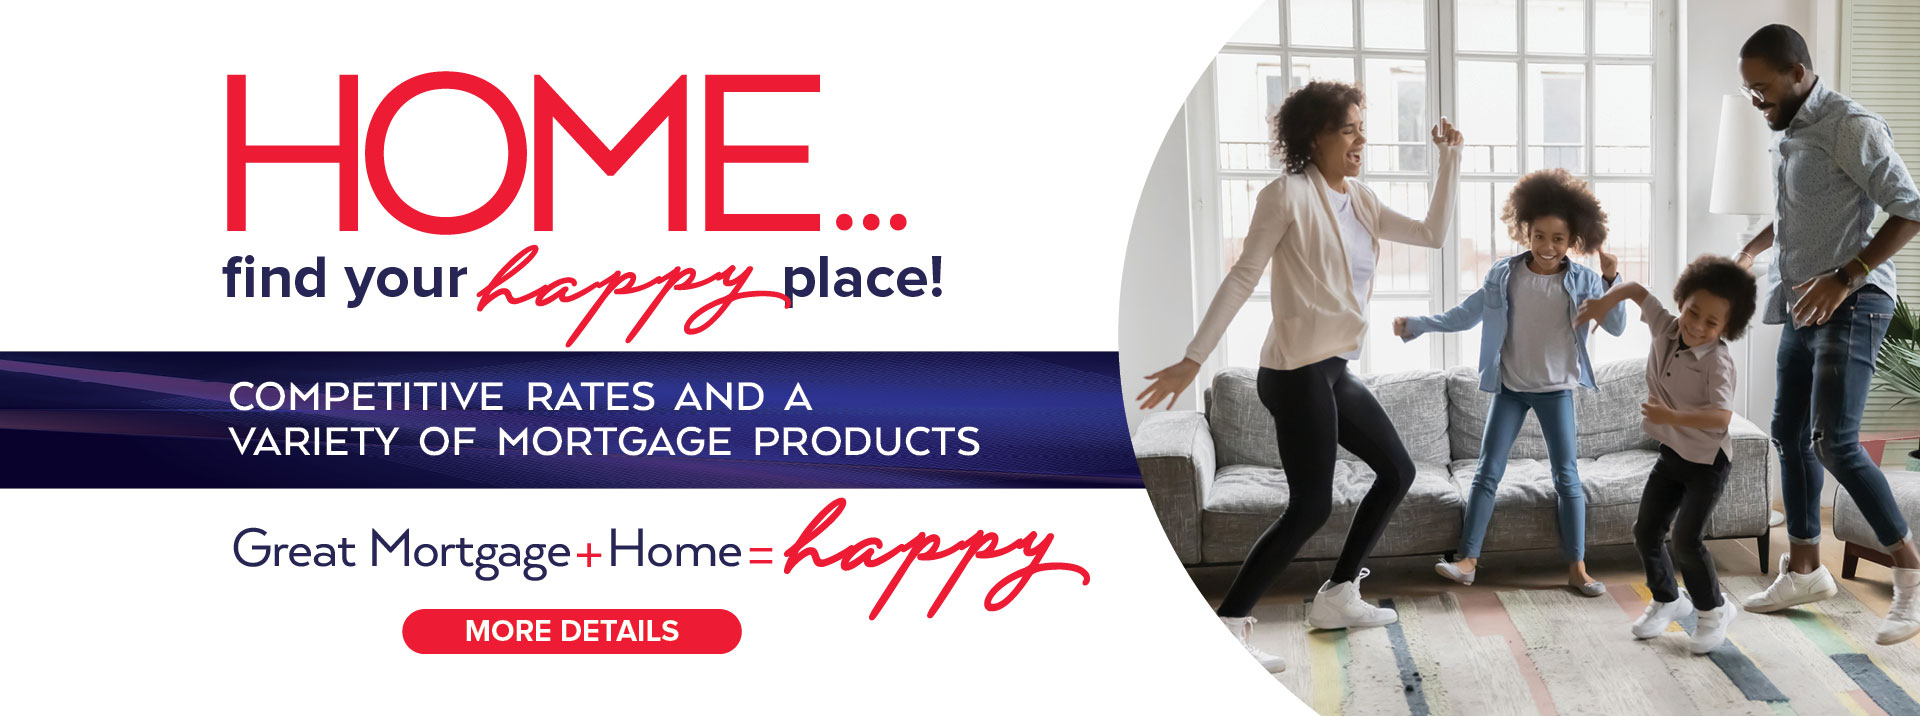 Home. Find your happy place. Competitive rates and a variety of mortgaage products. Learn more